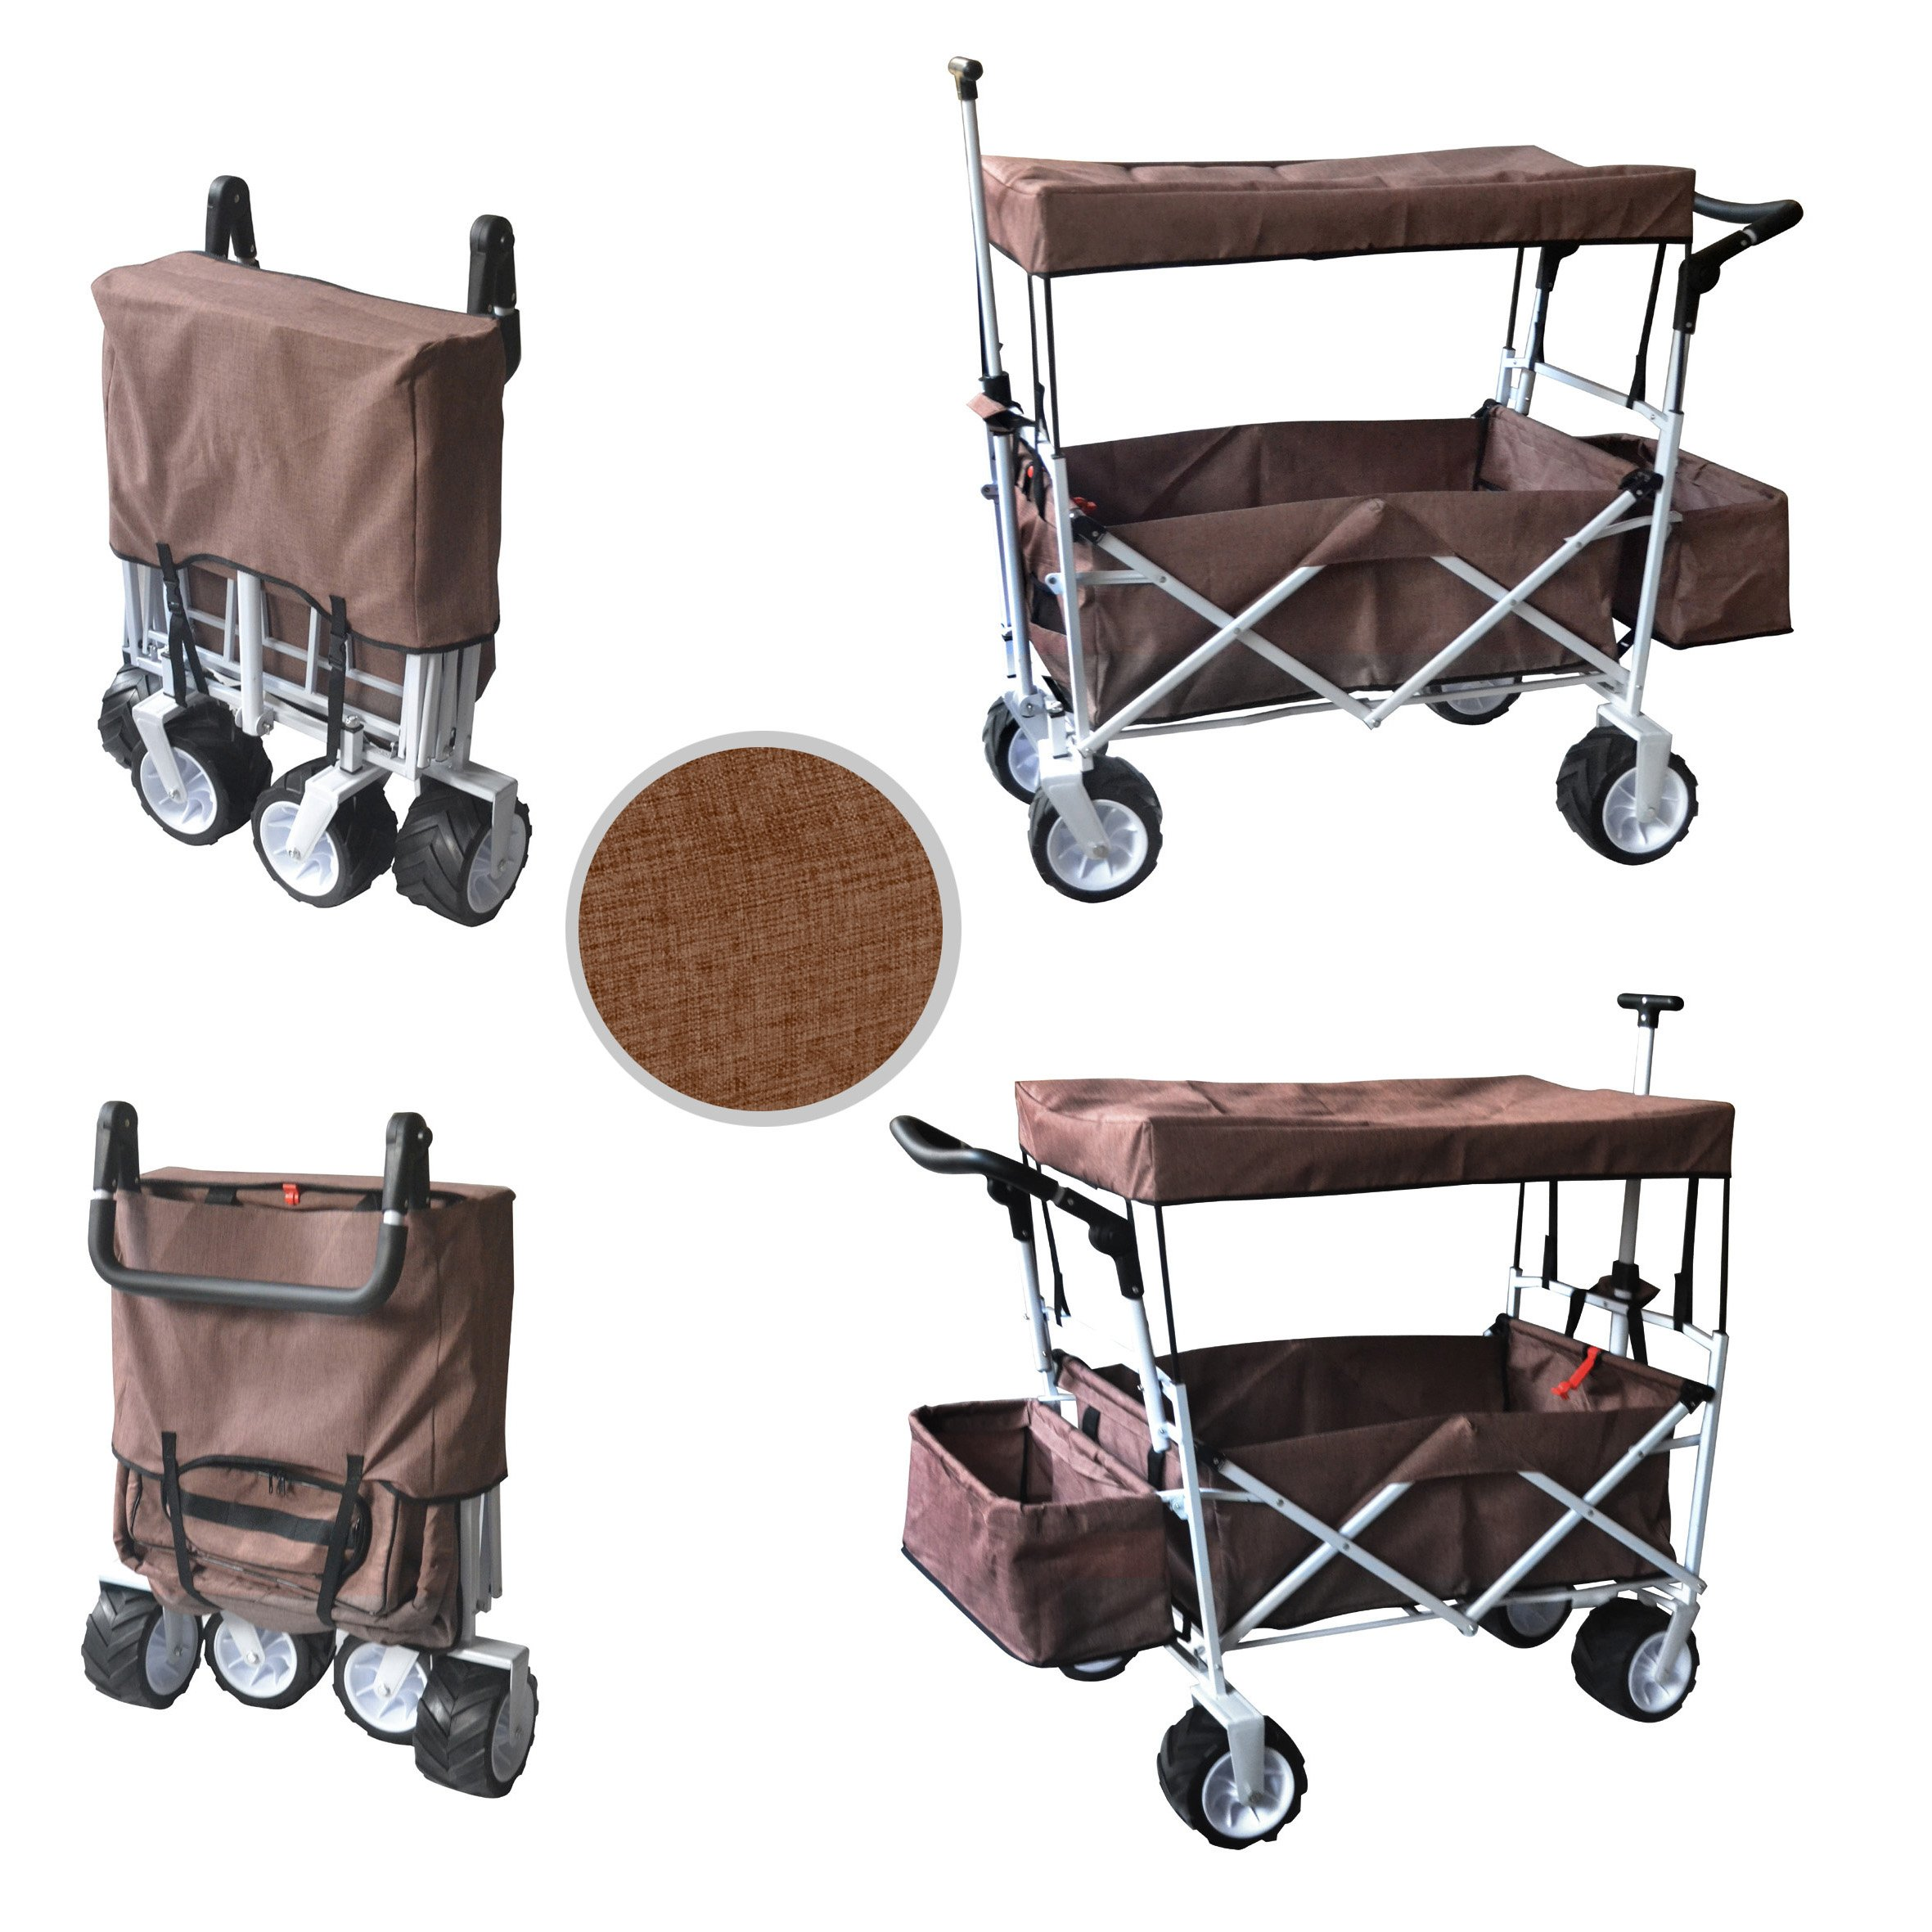 BROWN FREE ICE COOLER PUSH AND PULL HANDLE FOLDING BABY STROLLER WAGON OUTDOOR SPORT COLLAPSIBLE KIDS TROLLEY W/ CANOPY GARDEN UTILITY SHOPPING TRAVEL BEACH CART - EASY SETUP NO TOOL NECESSARY by WagonBuddy